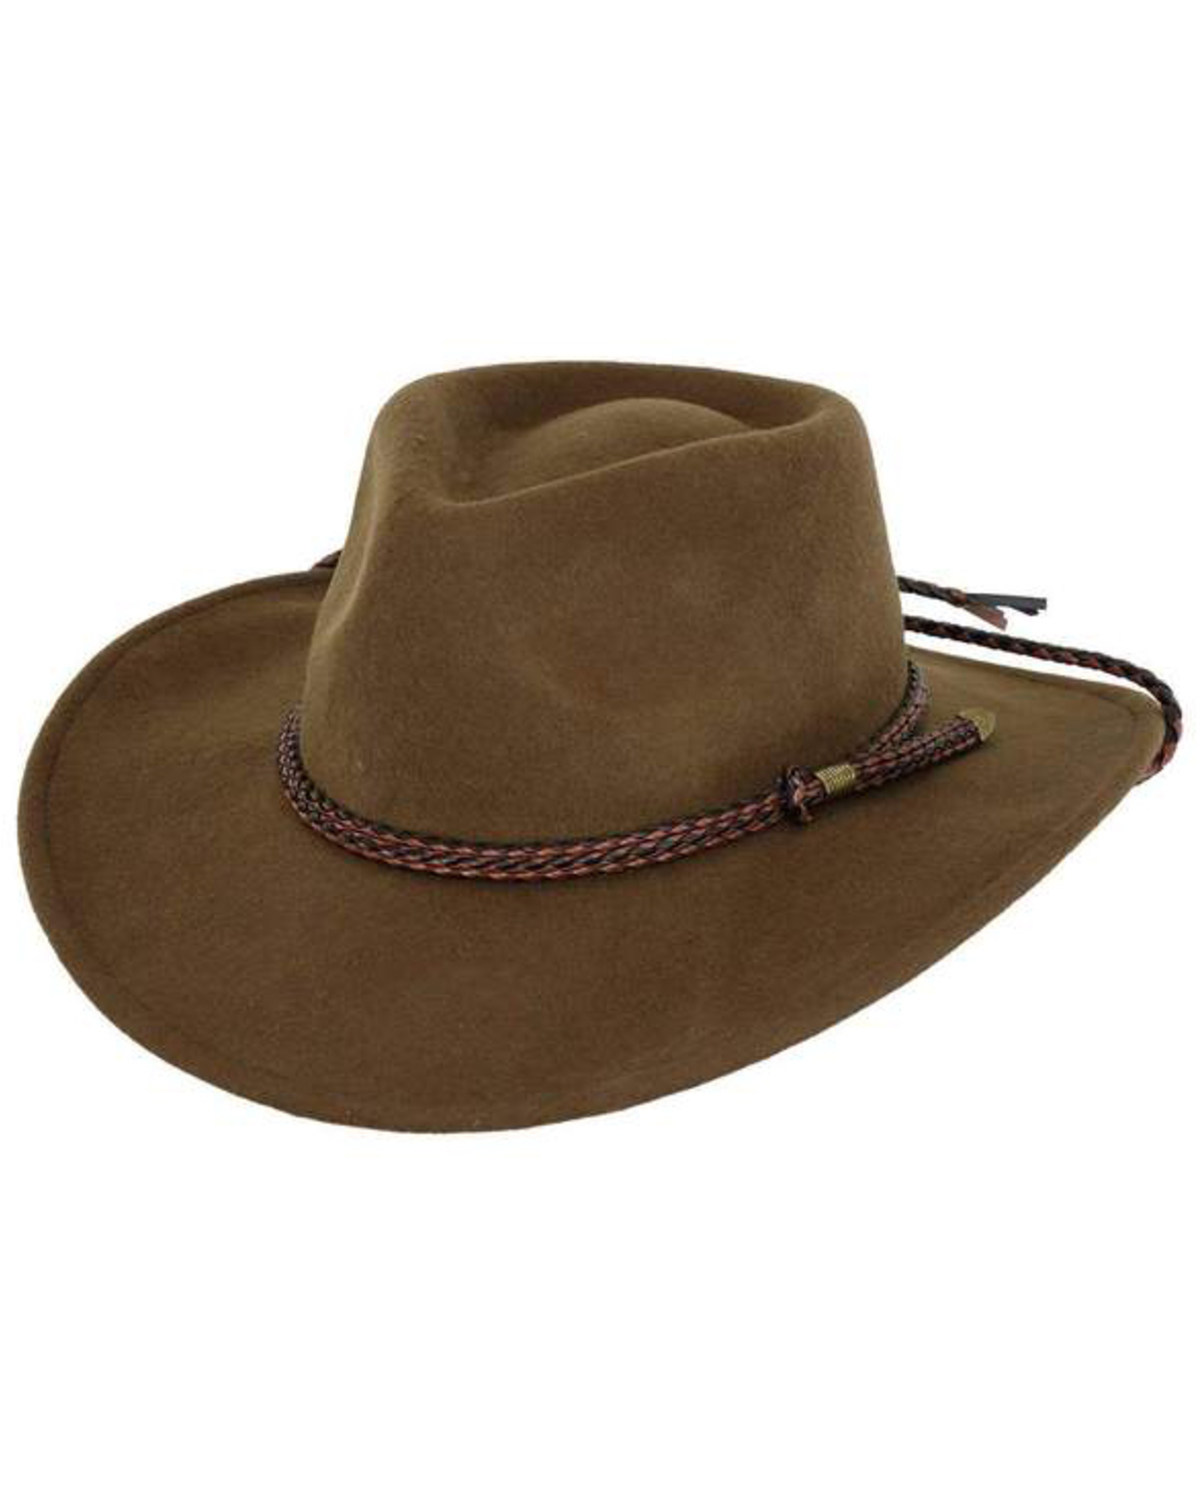 Outback Trading Co. Broken Hill Crushable Australian Wool Hat  3917d272406